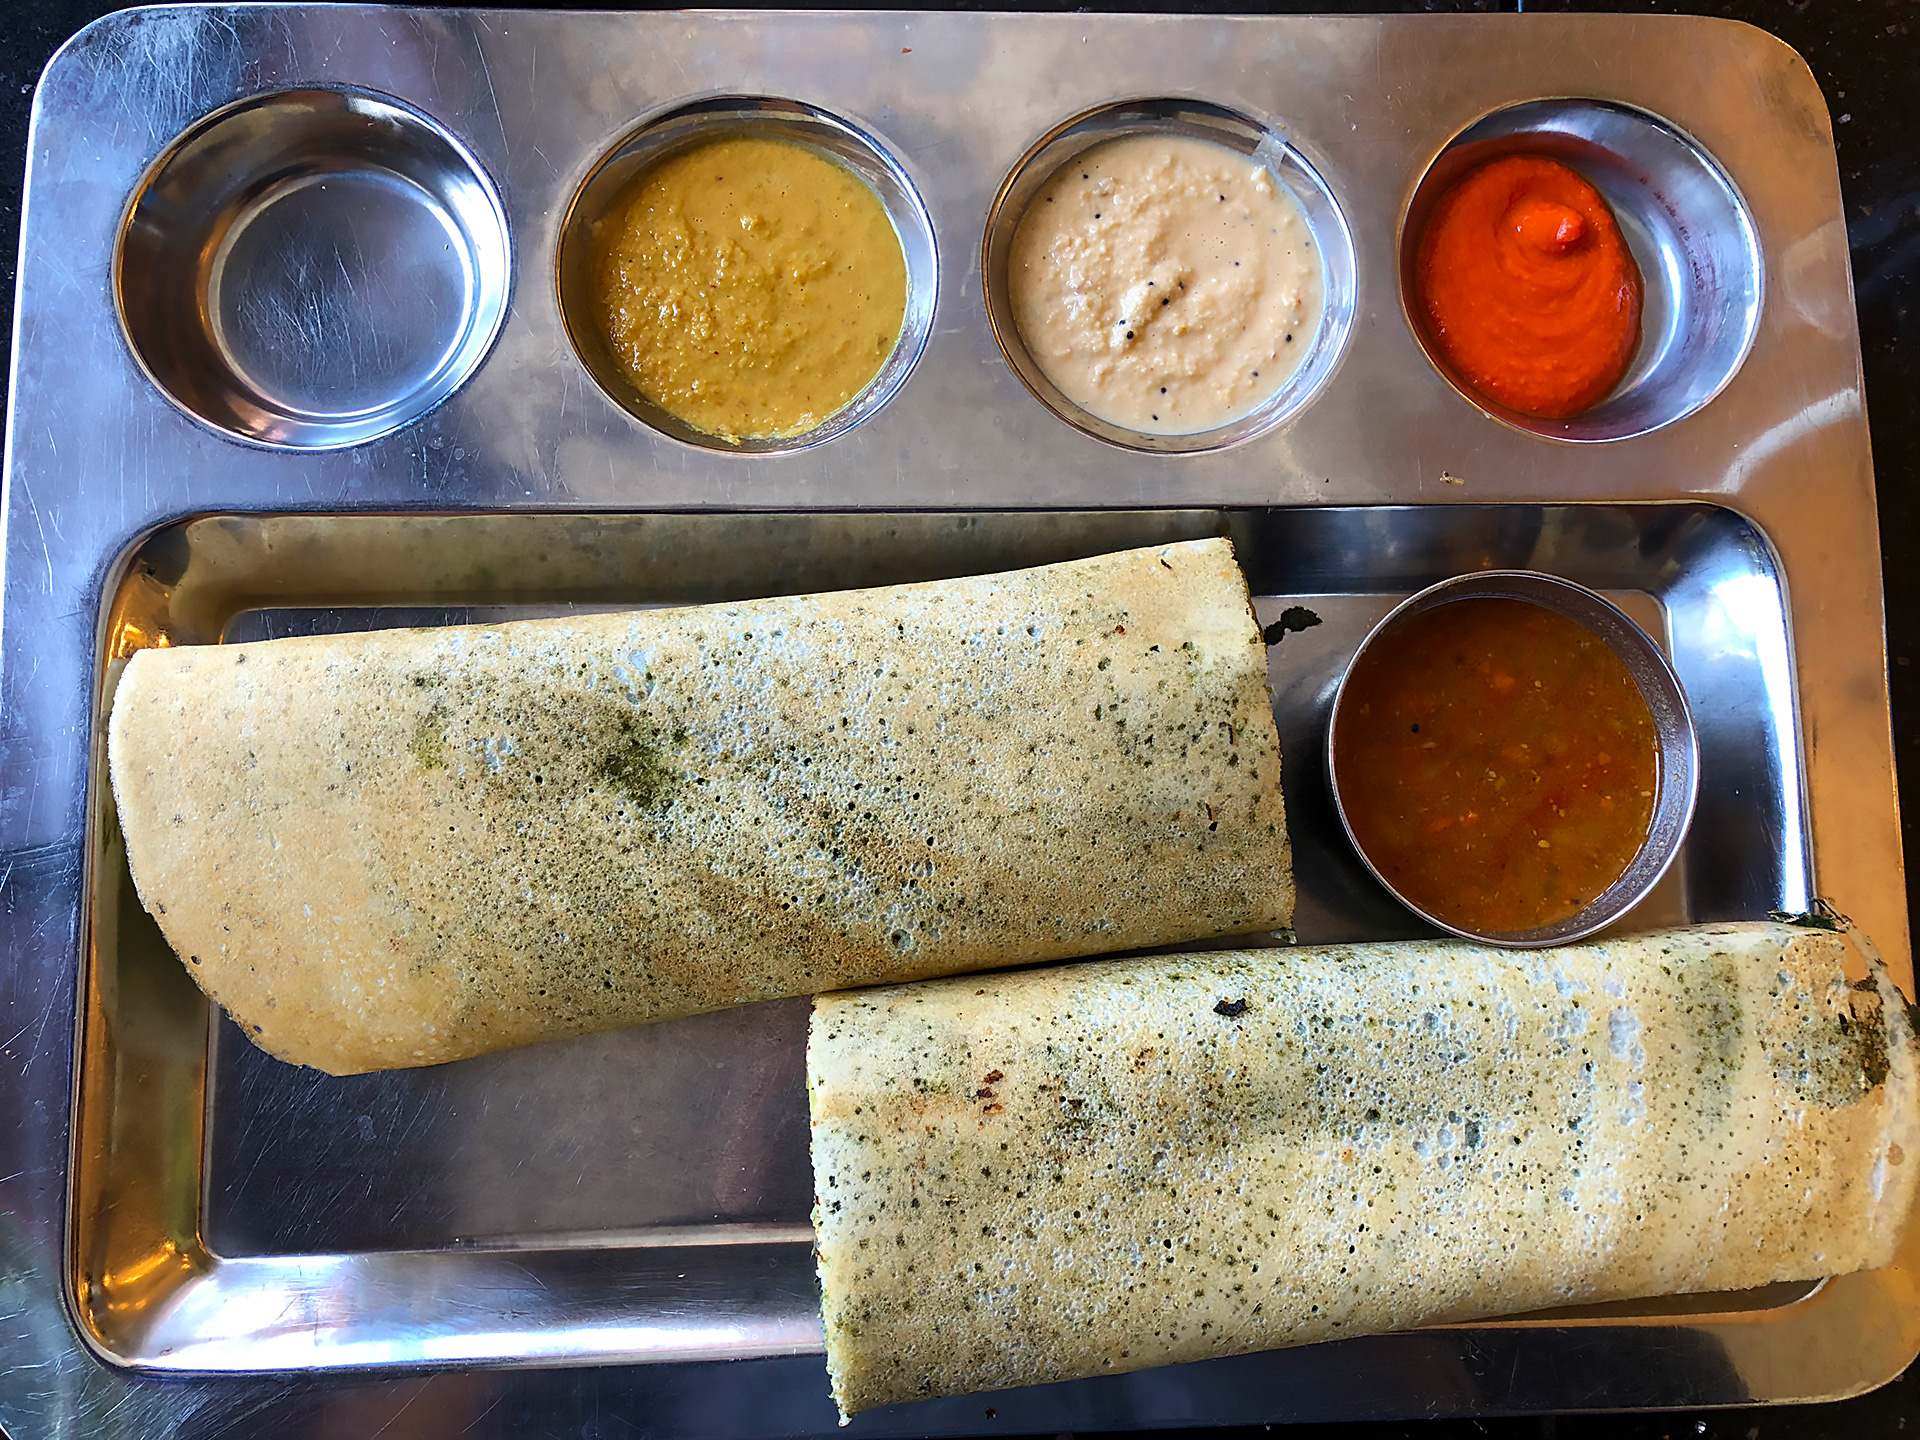 Spinach Masala Dosa - served with Sambar, Coconut, Tomato, & Ginger Chutney ($9.95)